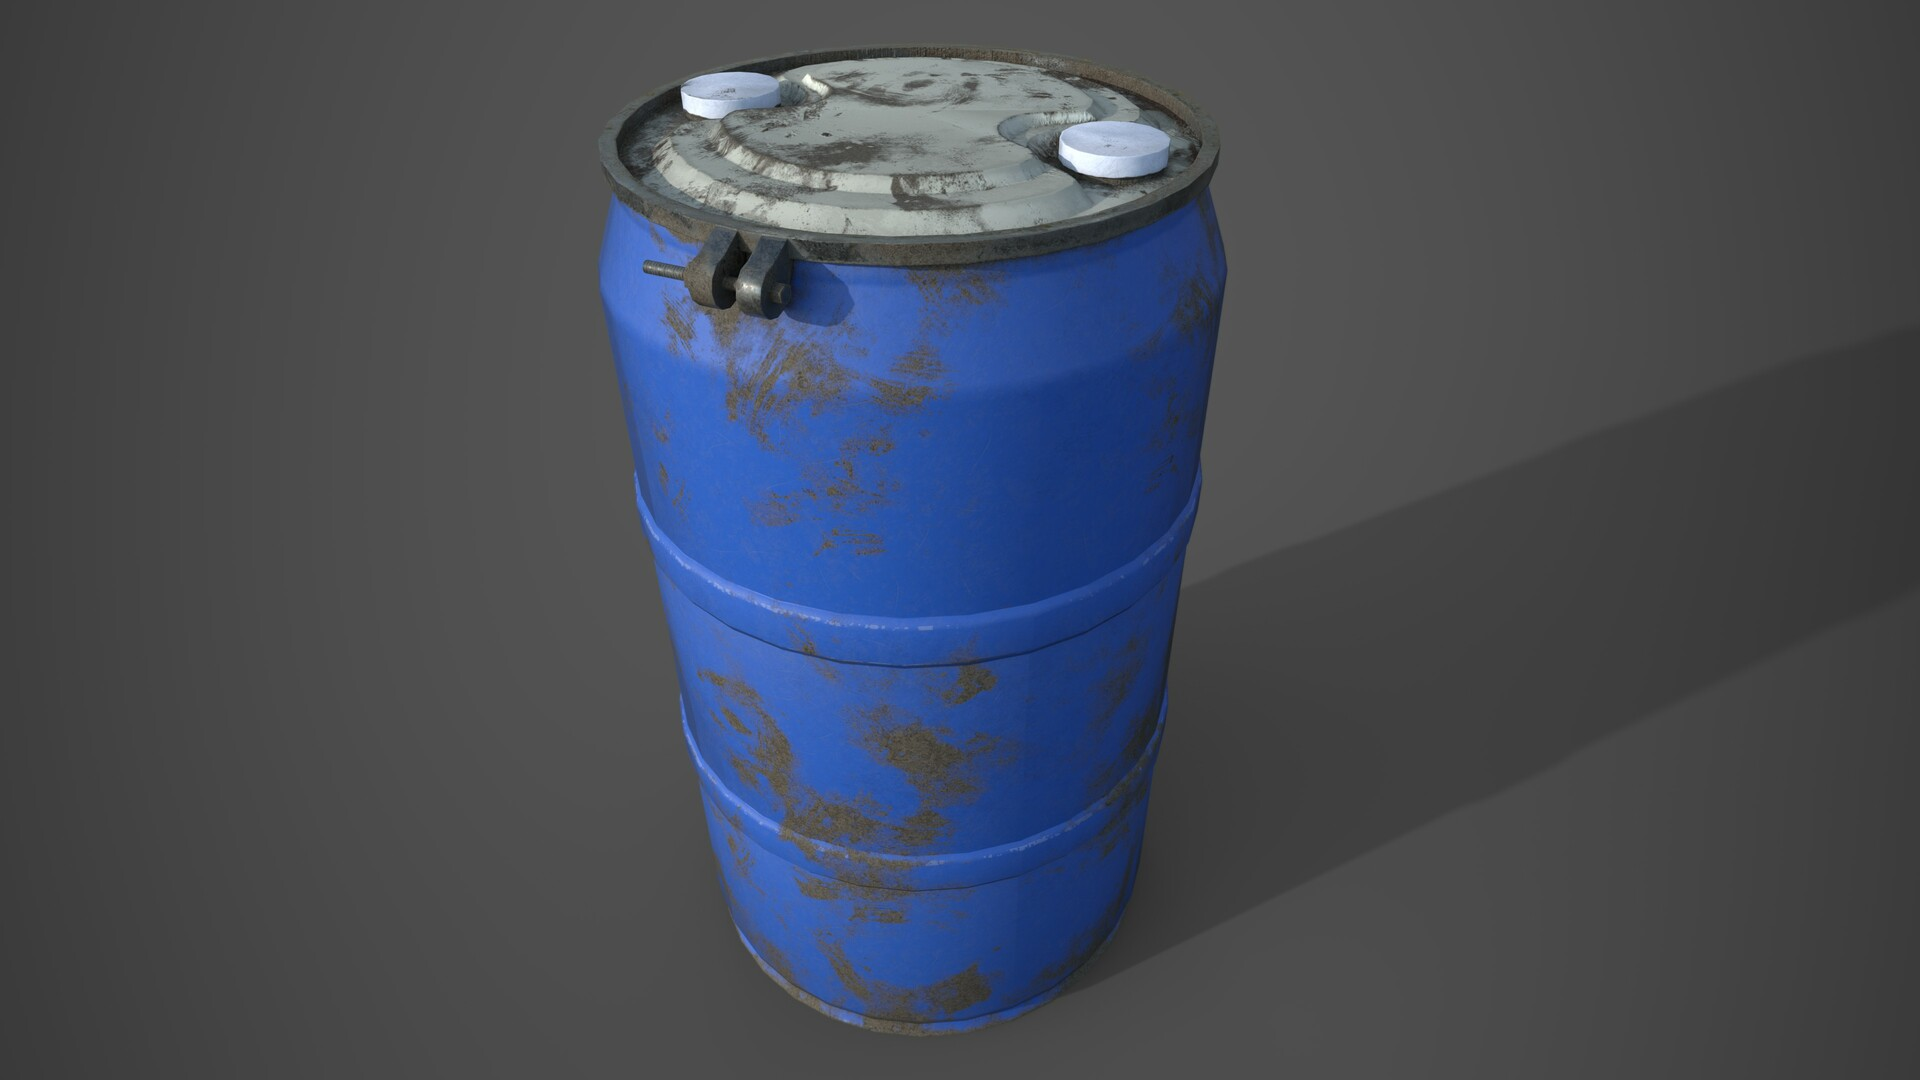 55 Gallon Drum -  Rendered in Iray